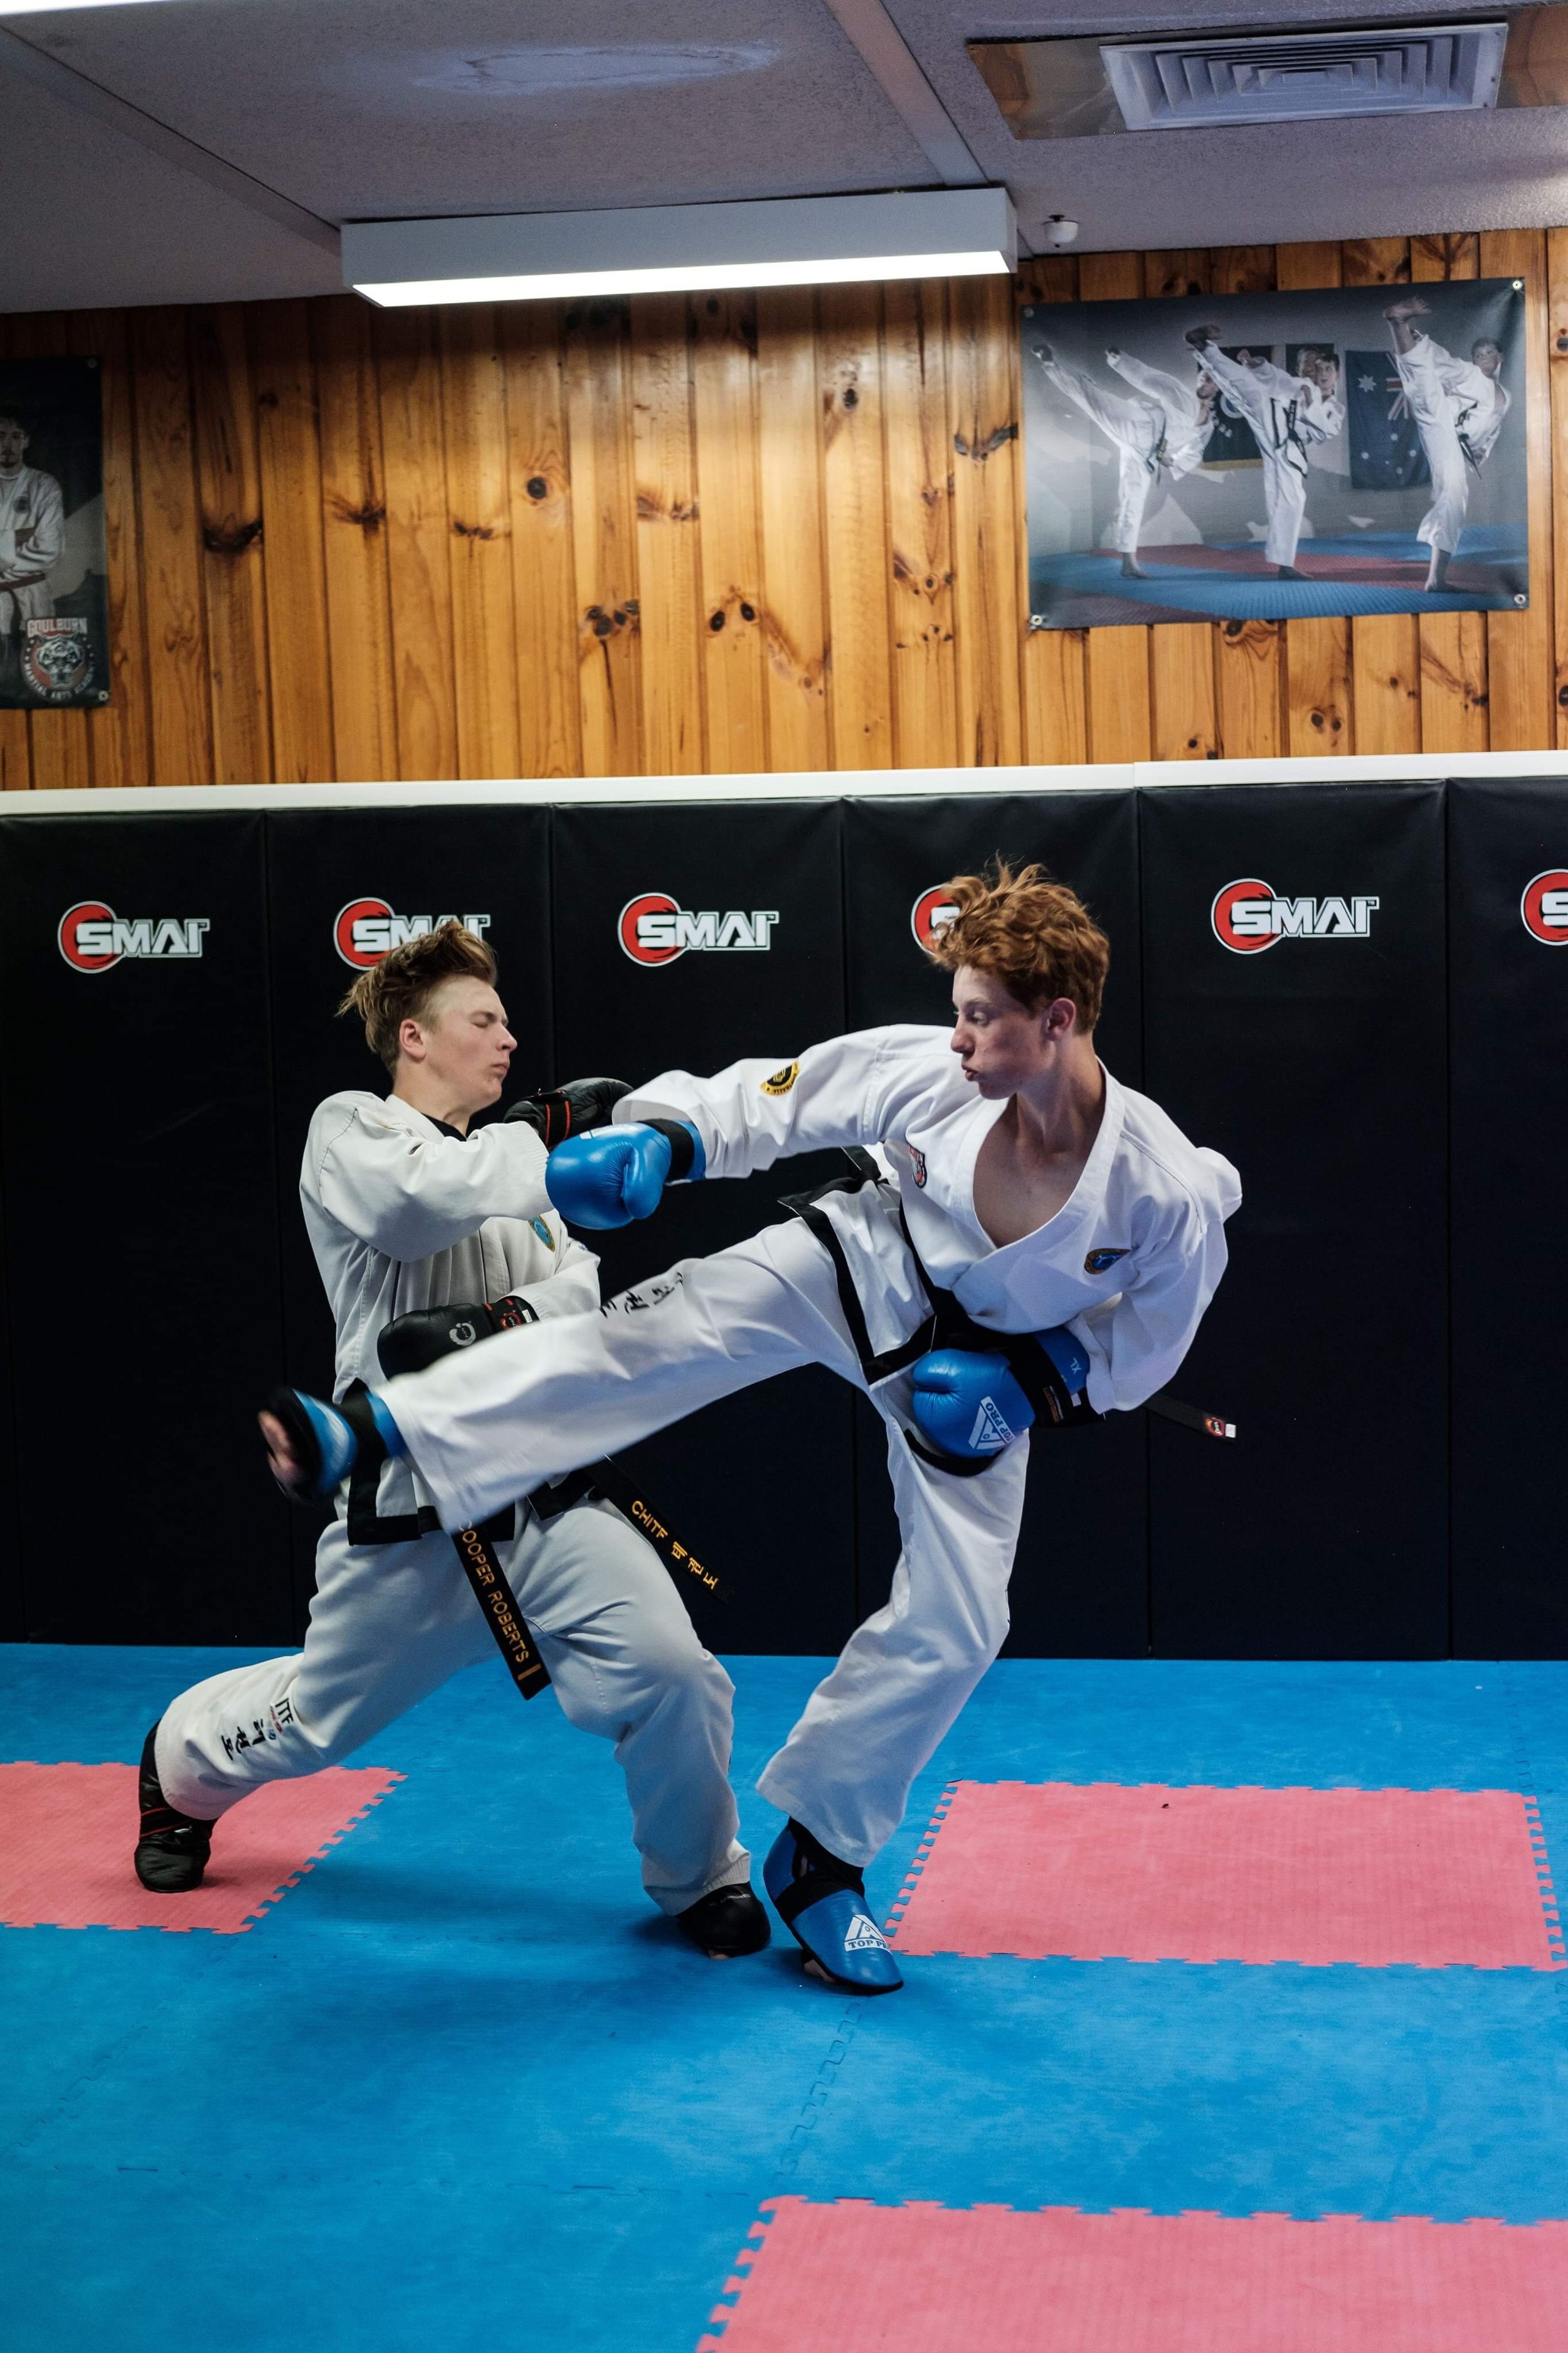 Thomas Harmer has become a 2 x Australian Champion and a silver medalist at the World Championships. Currently a 1st degree black belt.  Tom has been born into the martial arts lifestyle and is beginning to understand that it is about helping others and not what you can take from the art.